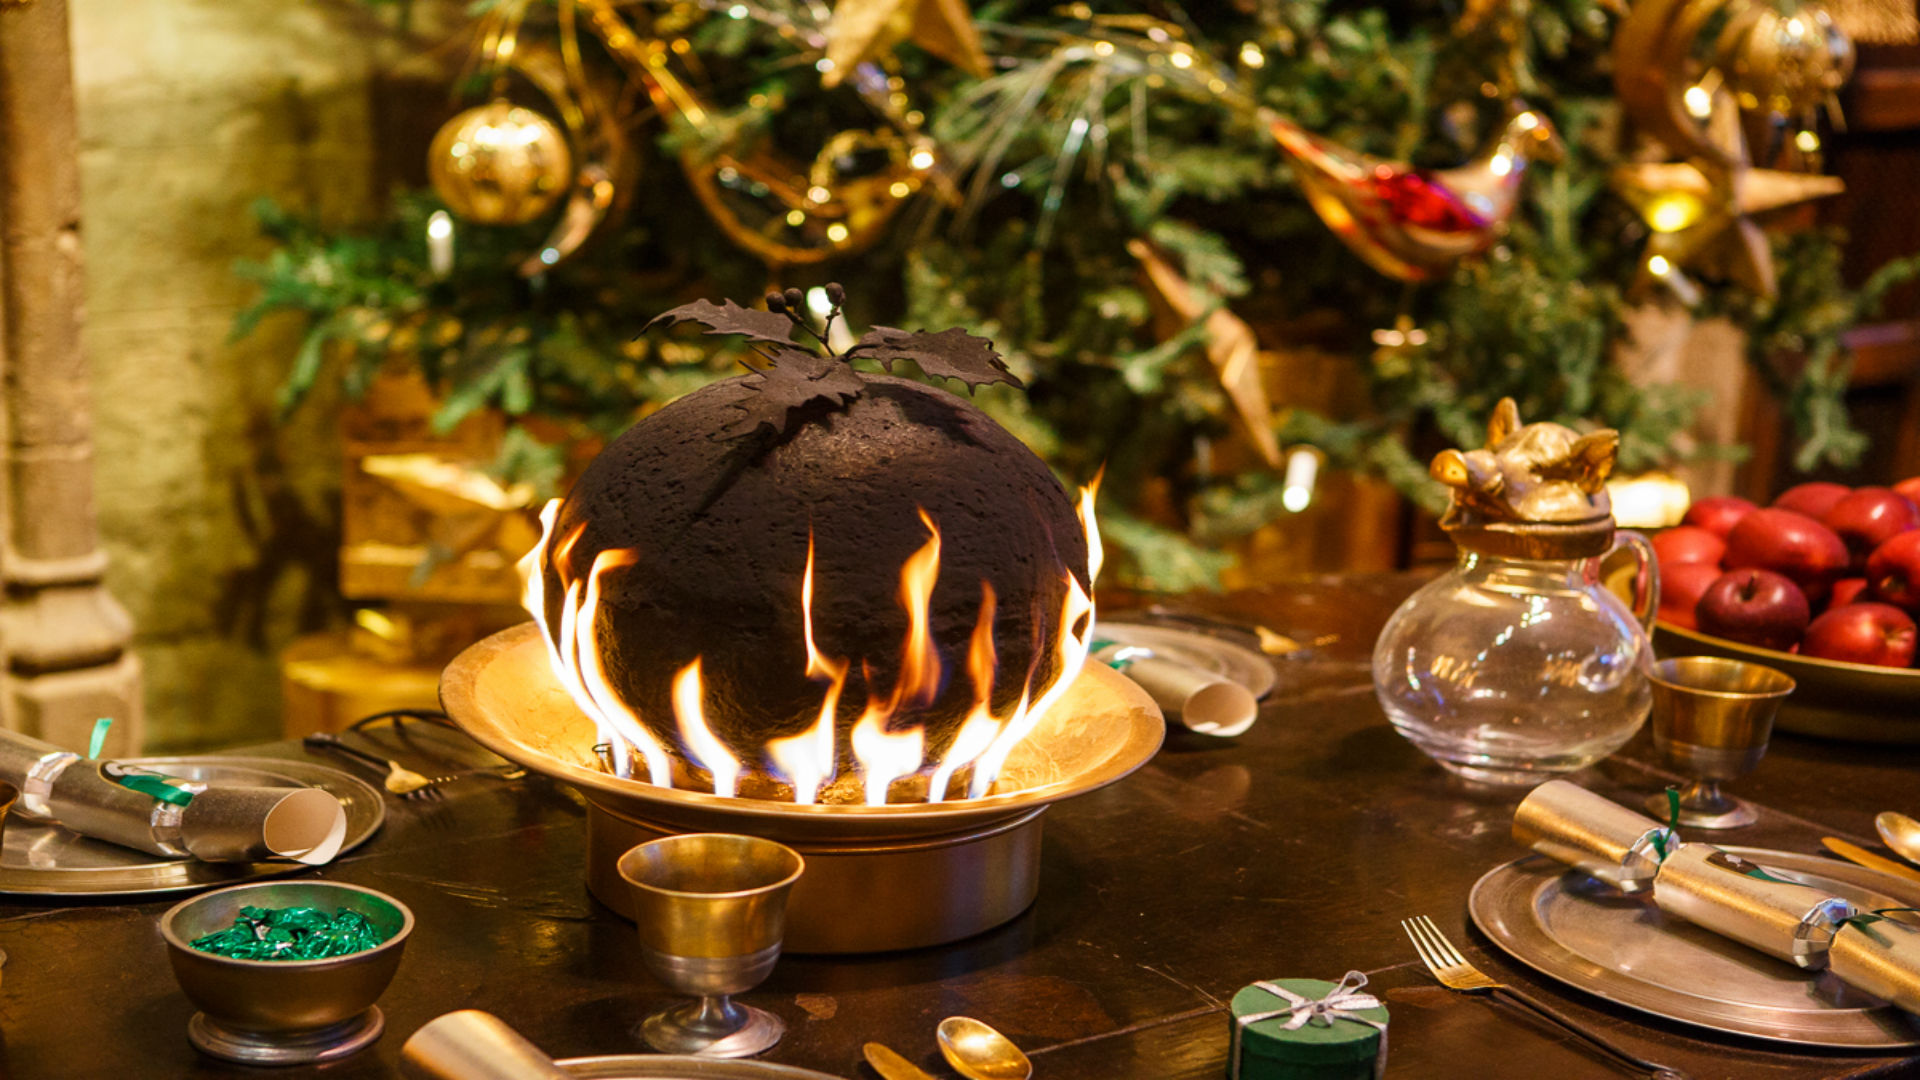 Flaming puddings at Hogwarts in the Snow at Warner Bros. Studios The Making of Harry Potter